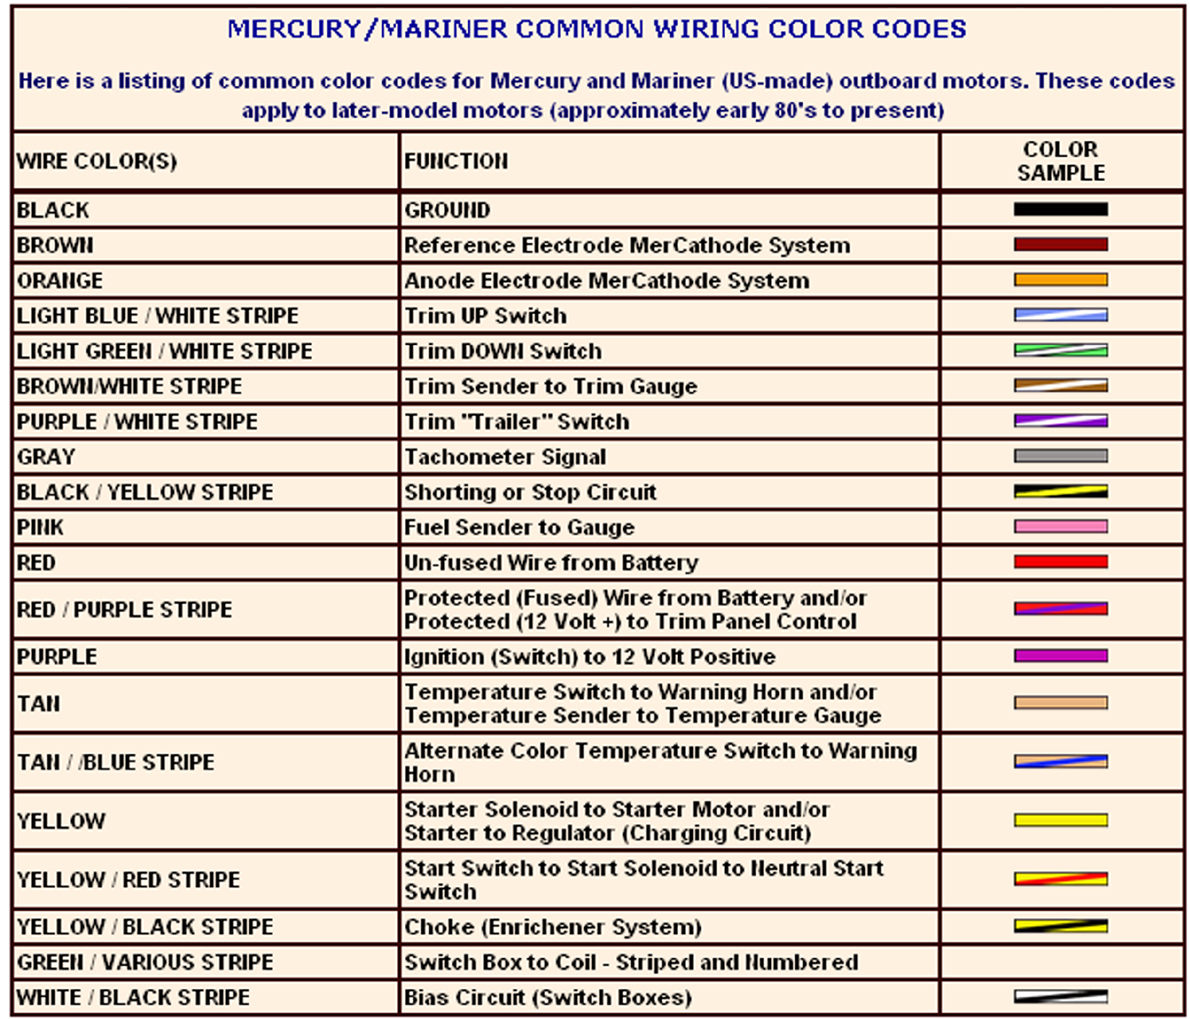 hight resolution of bmw wiring diagram color codes wiring diagram official bmw e36 wiring color codes bmw wiring color